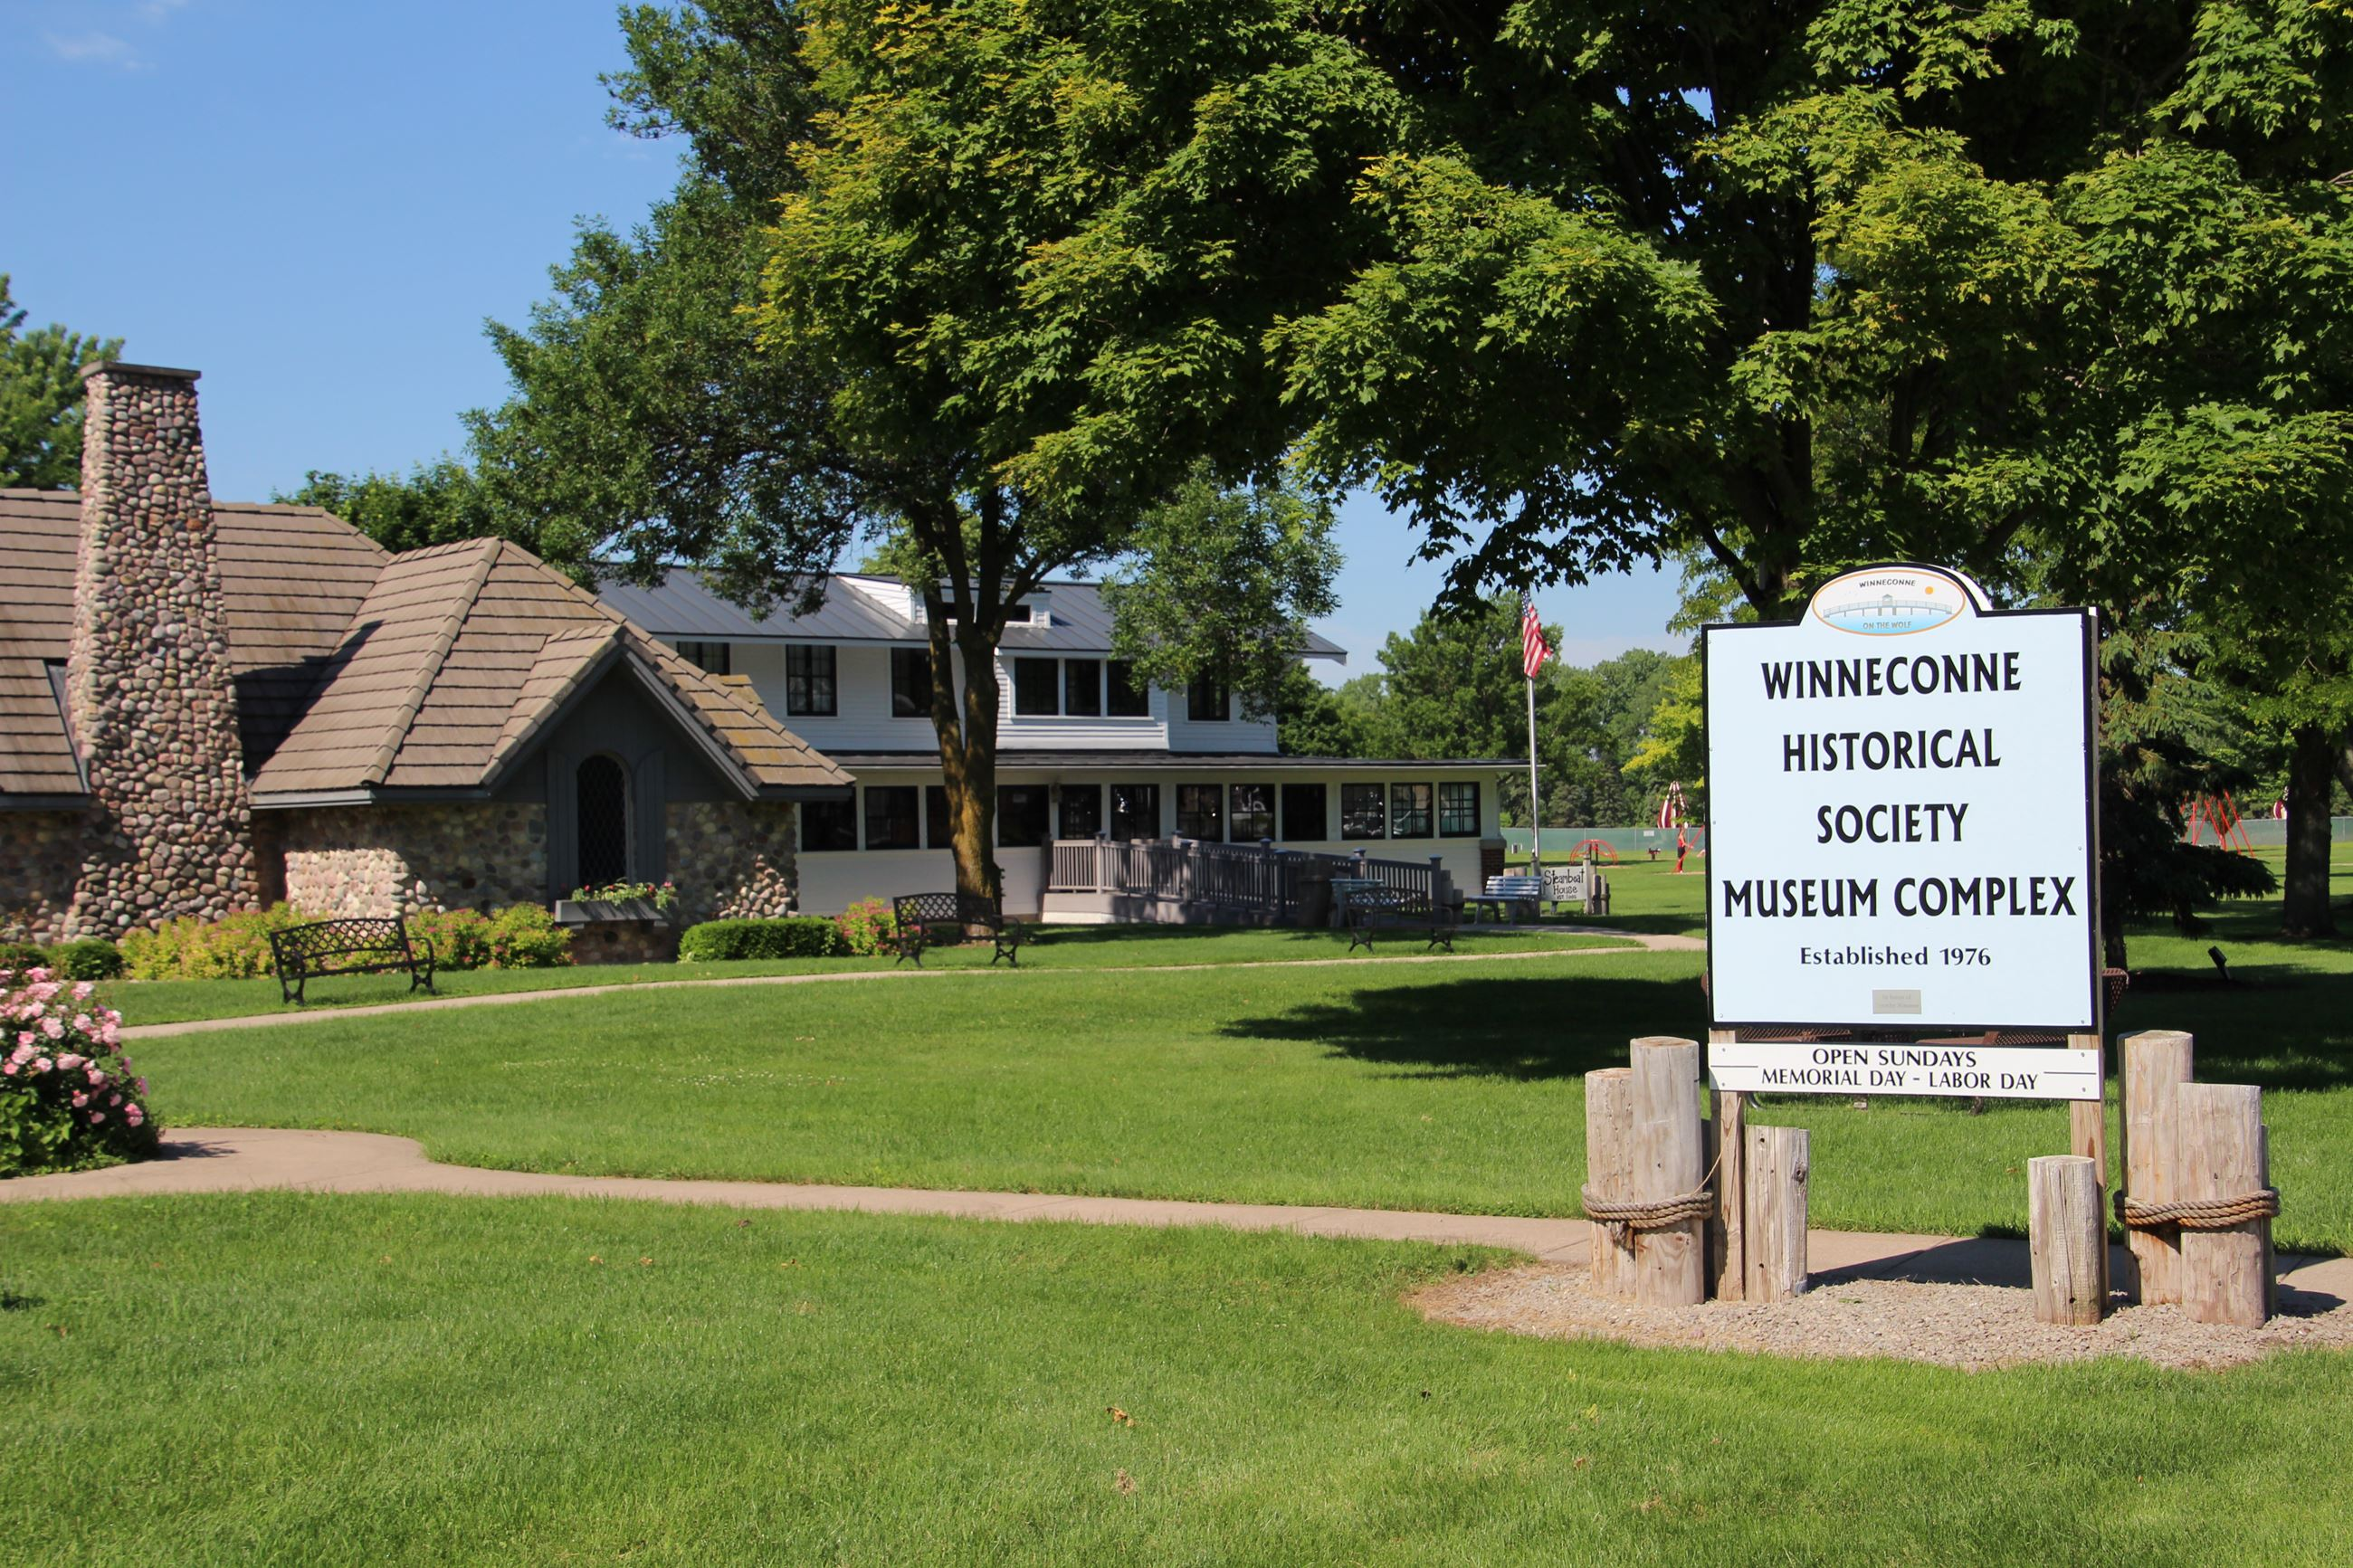 Winneconne Historical Society Museum Complex 2016